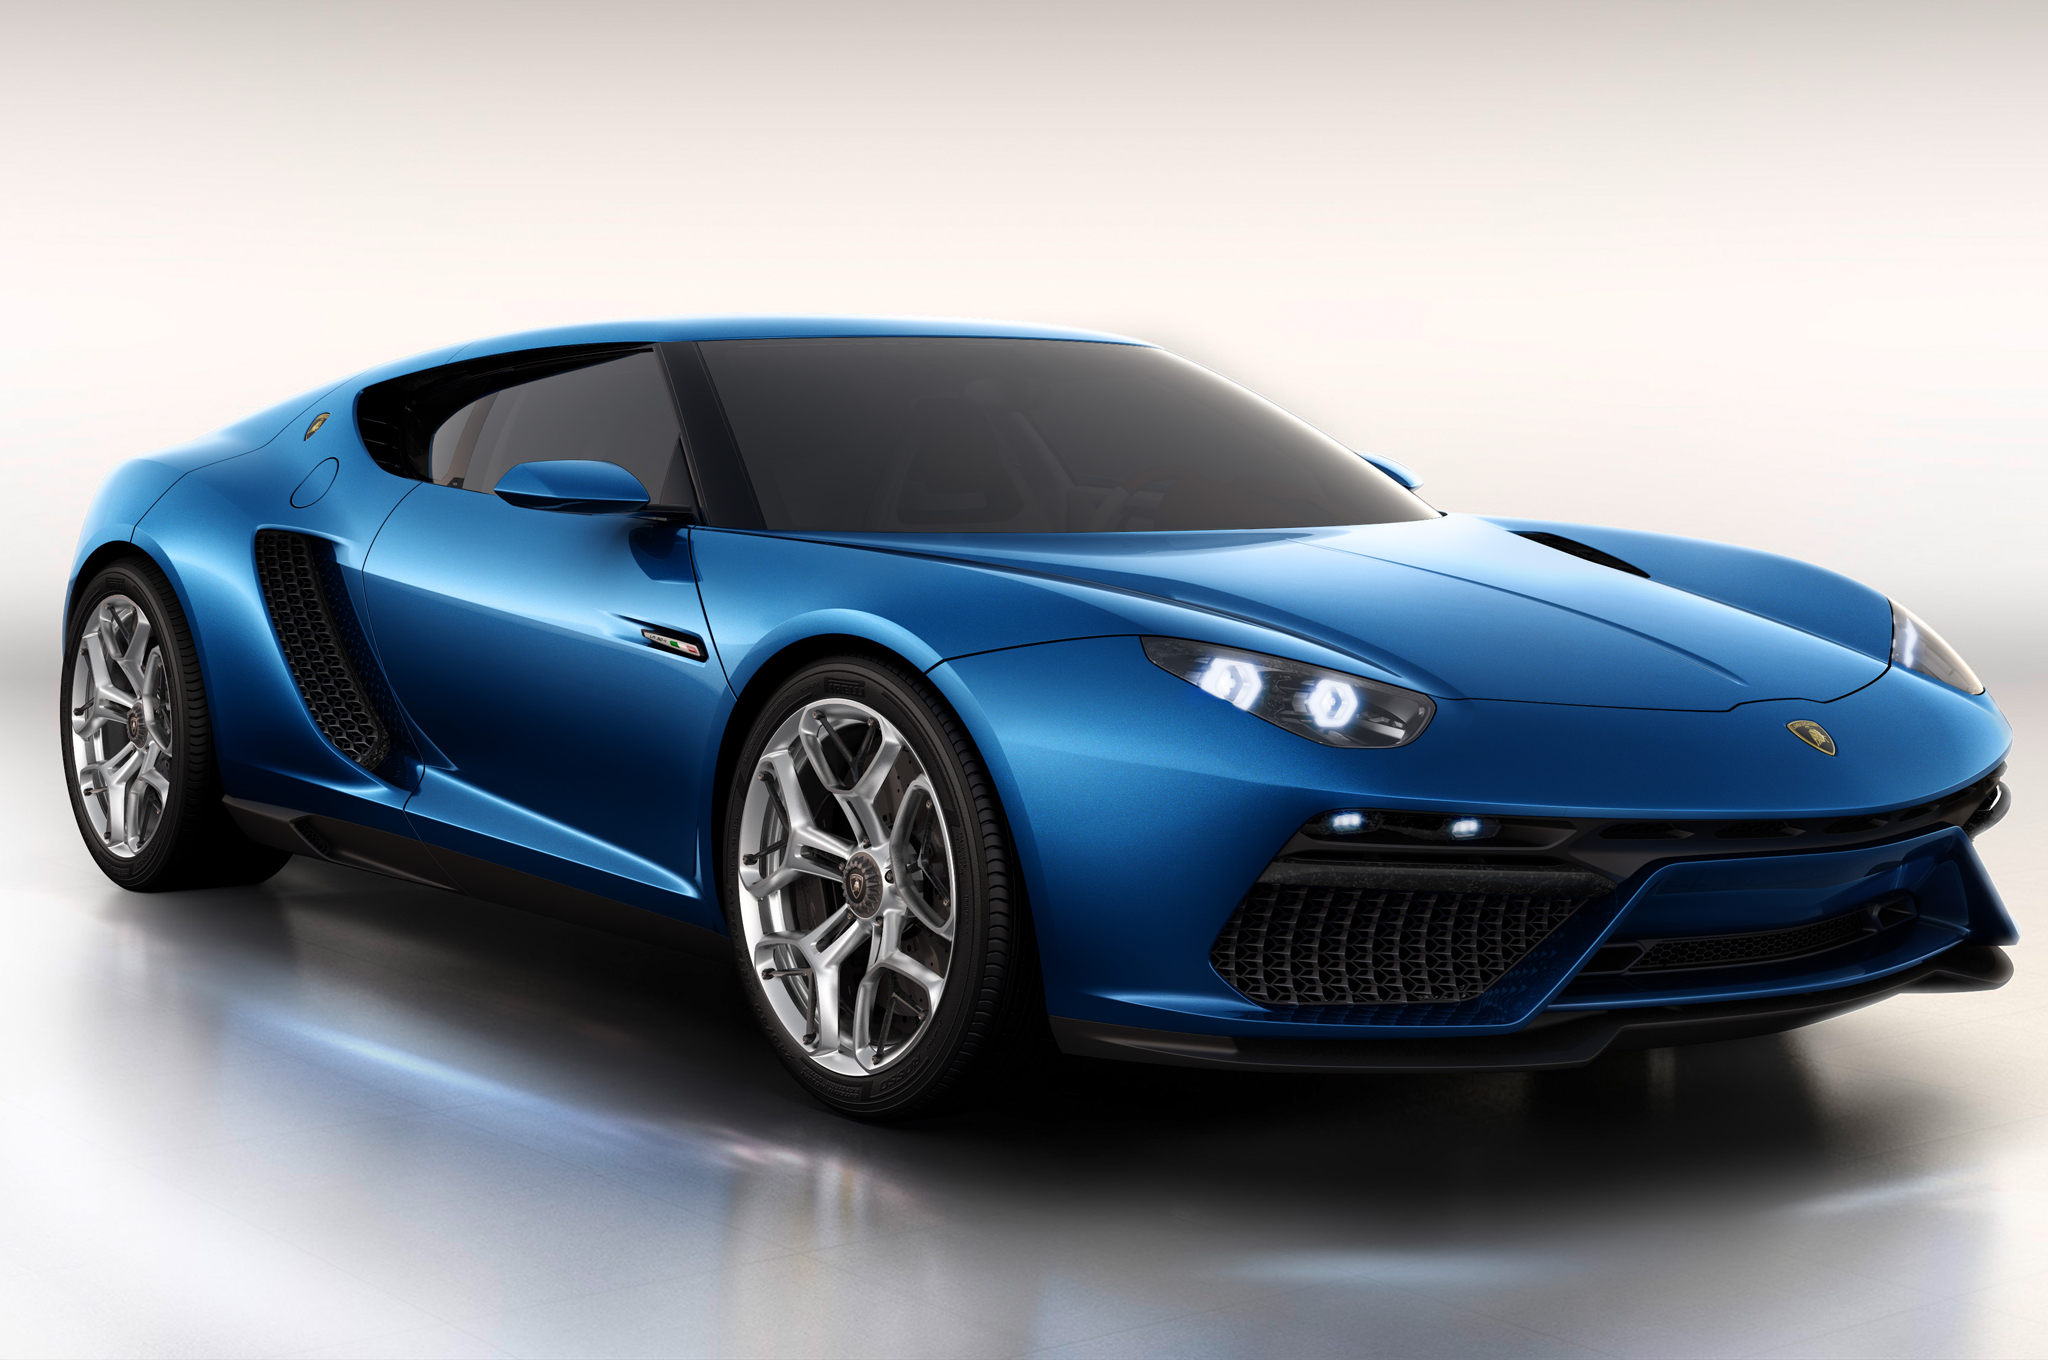 Photo courtesy Automobili Lamborghini